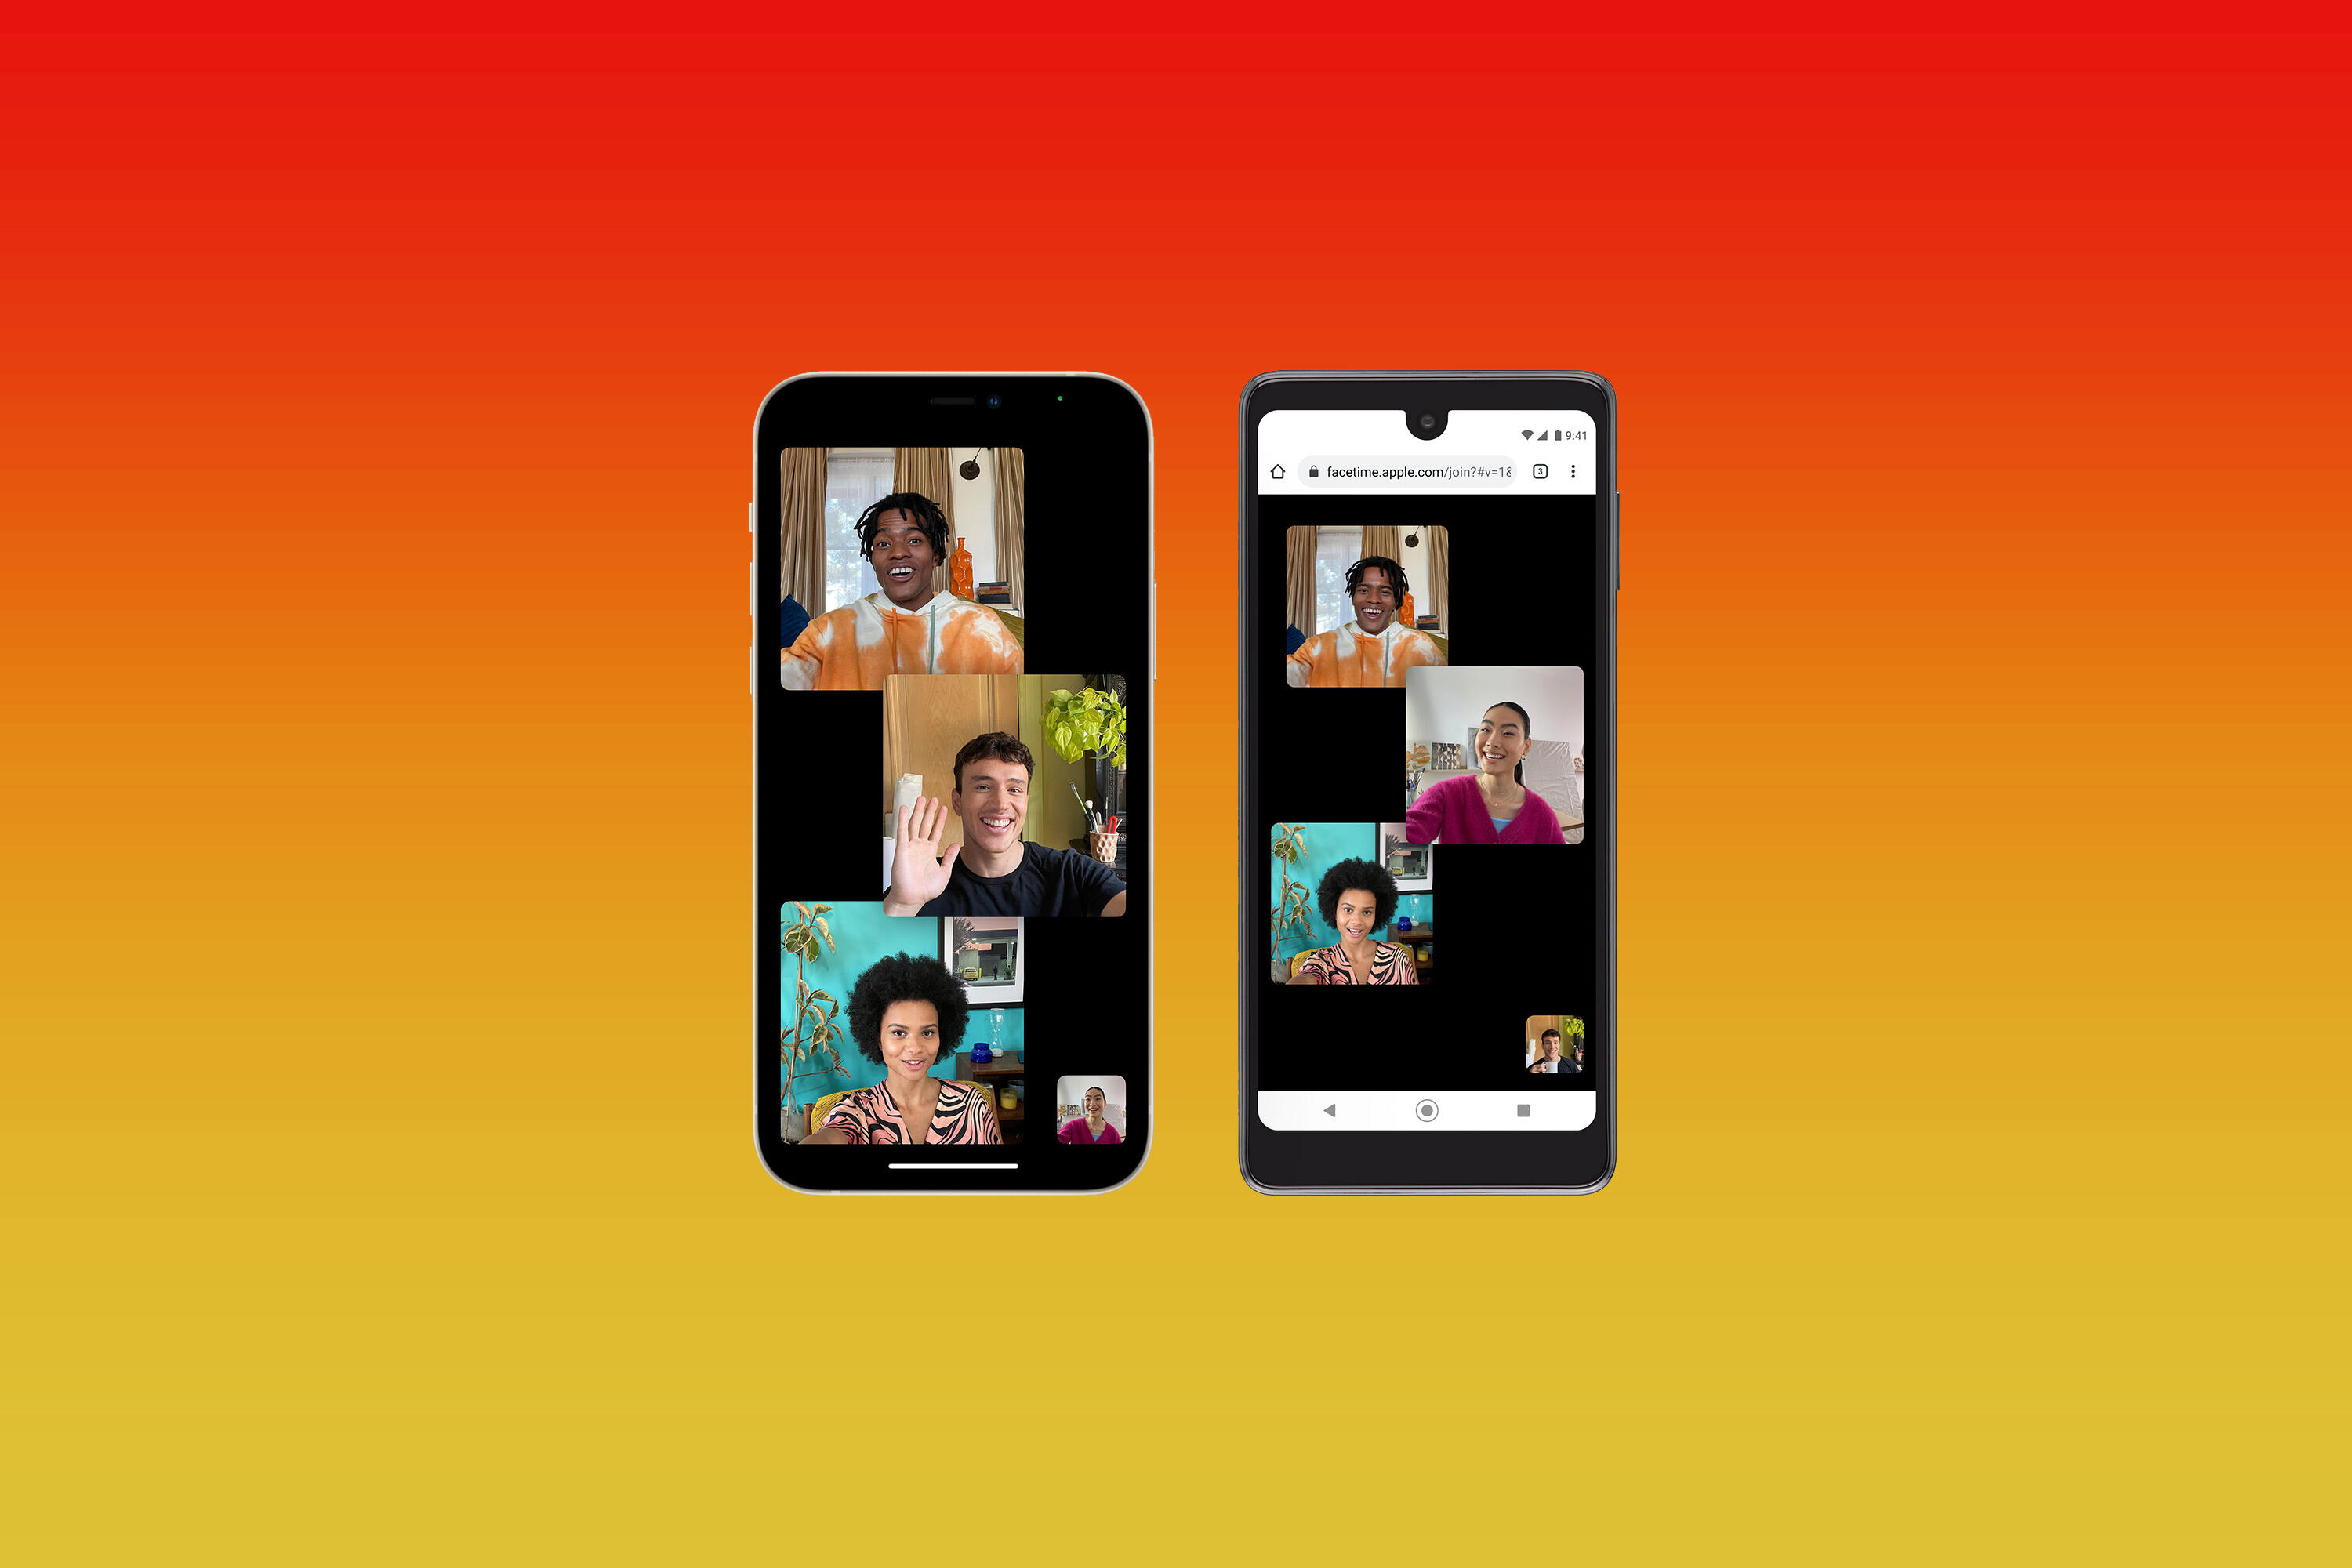 apple-iphone-to-android-facetime-video-calling-ios-15-005